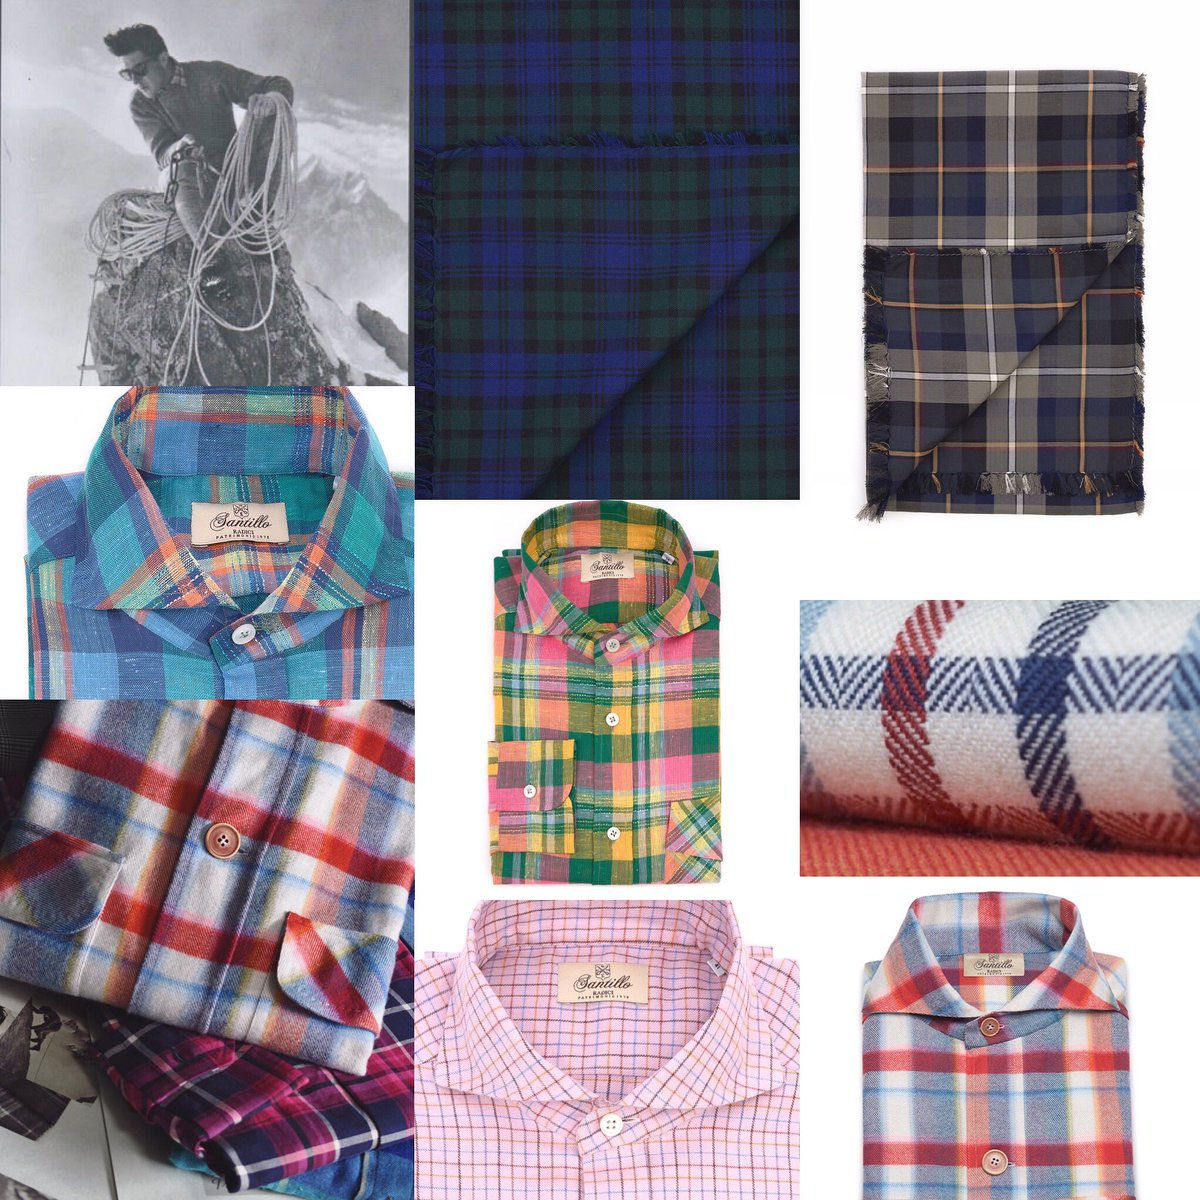 From latest collection soon available on sale#check #tartan #madras  #radiciproject  #comfortneverwithoutelegance #inspiration #fw20  #classicmenstyle #gentlemantips #timeless #elegance #details #luckyflannel #exclusive #handmadeinitaly #santillo1970 #mastershirtmakerspic.twitter.com/wYudPYajE6